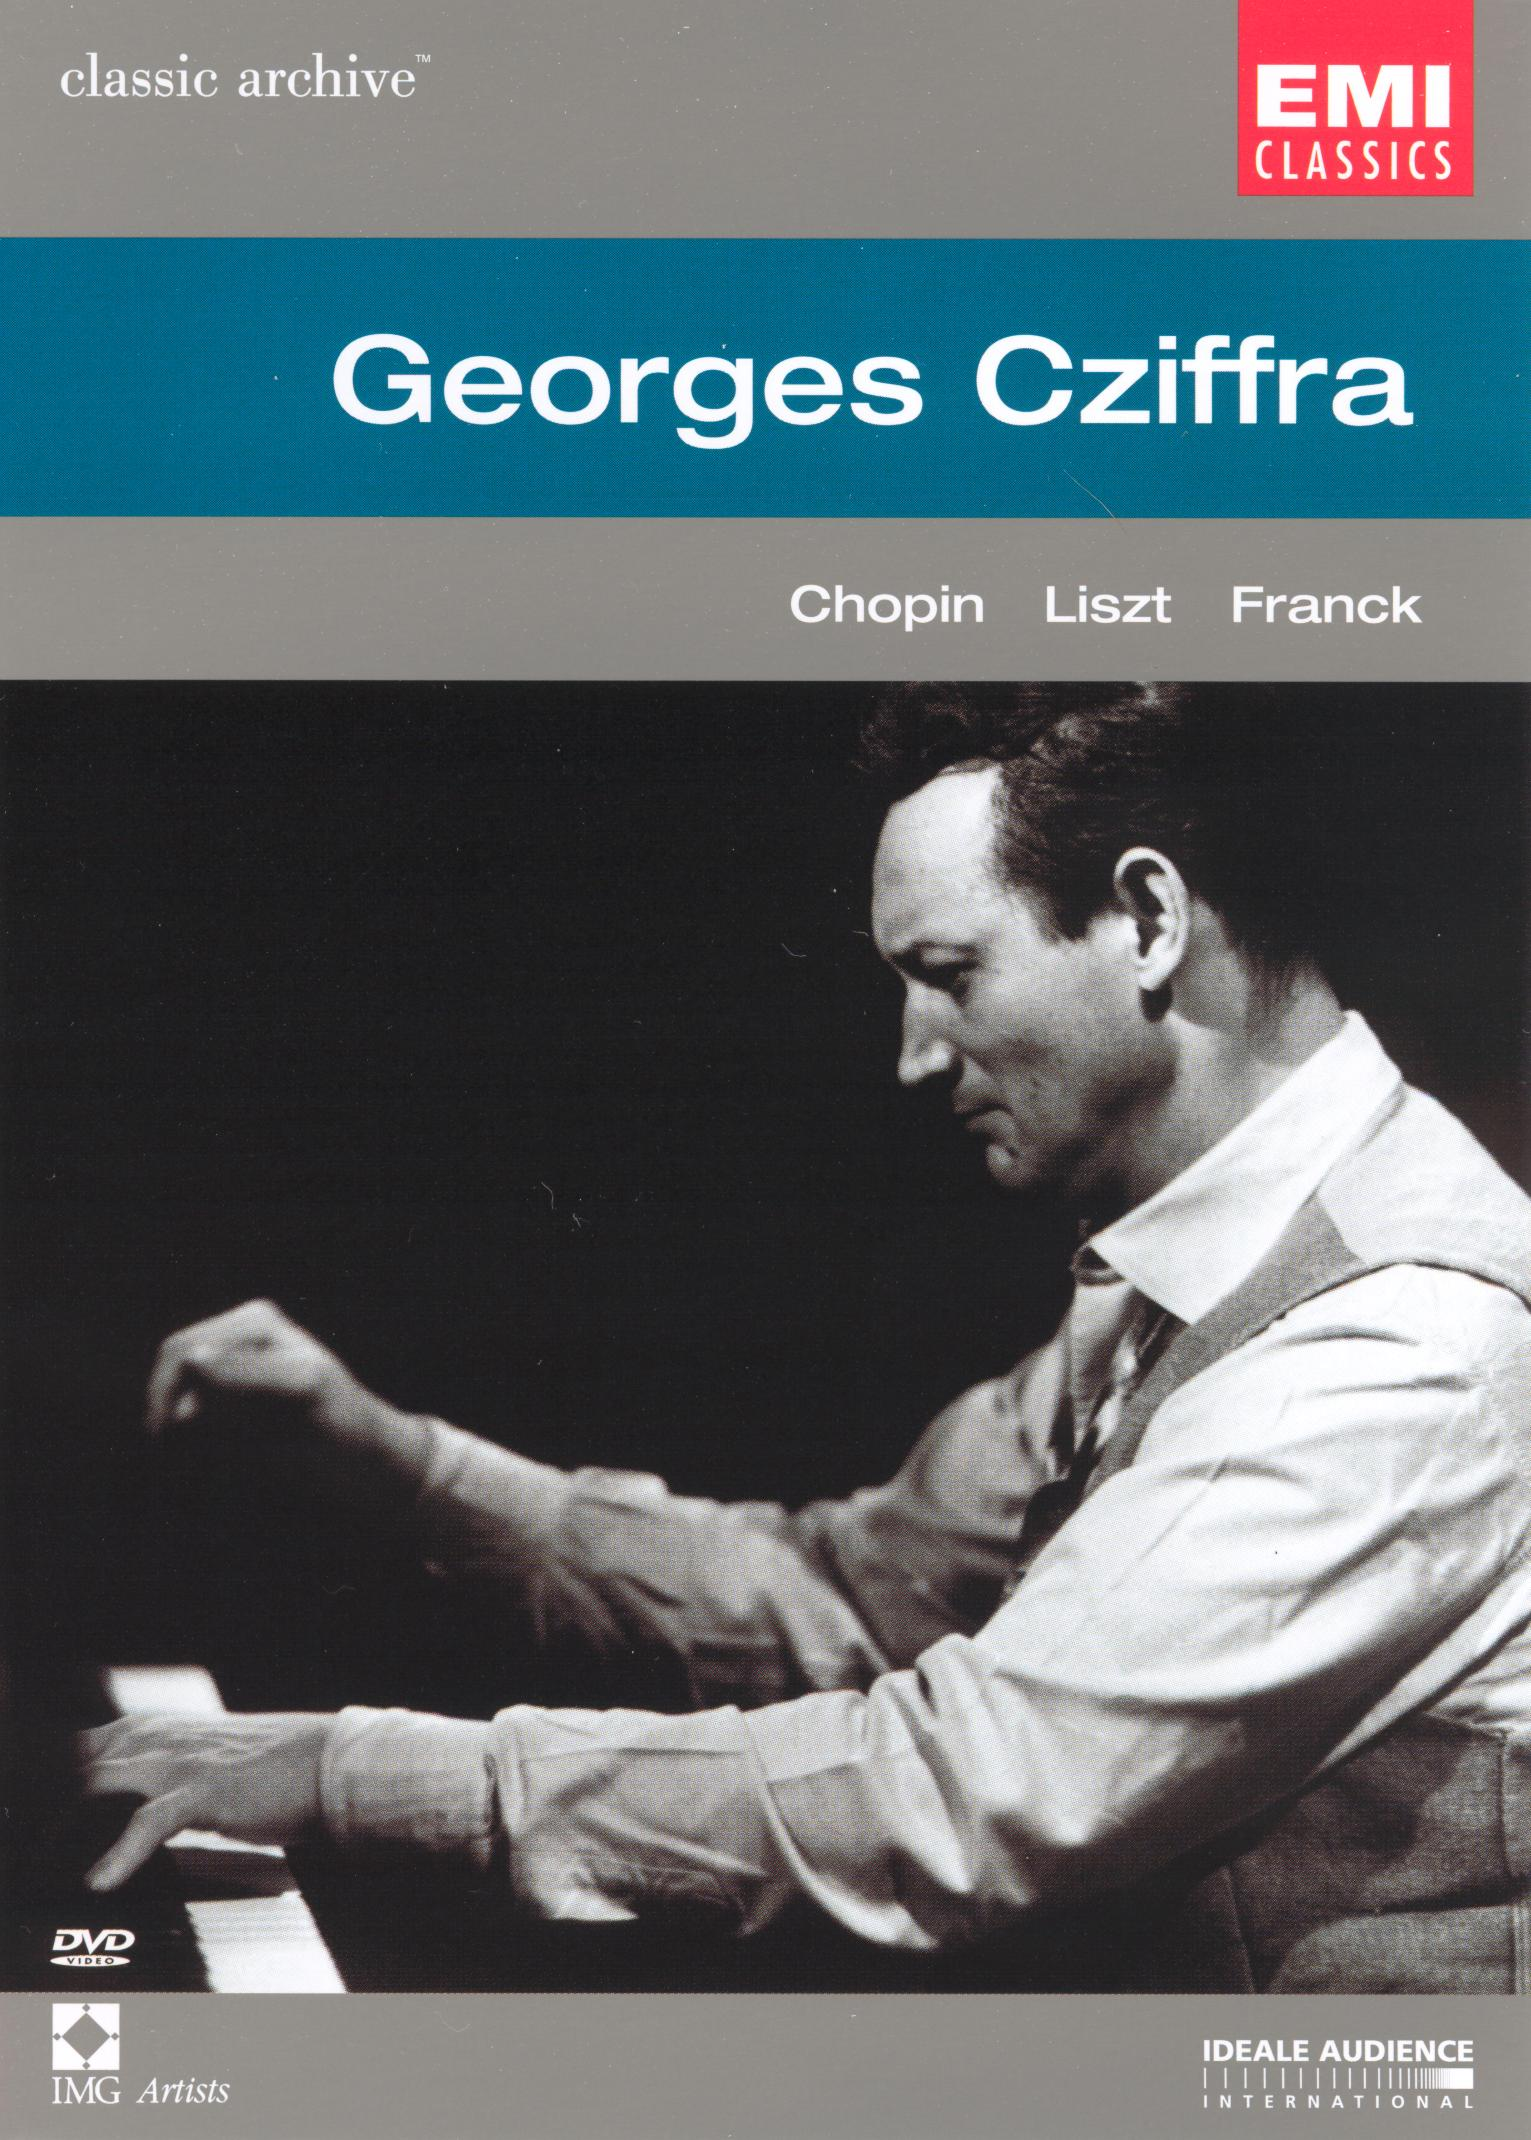 Classic Archive: Georges Cziffra